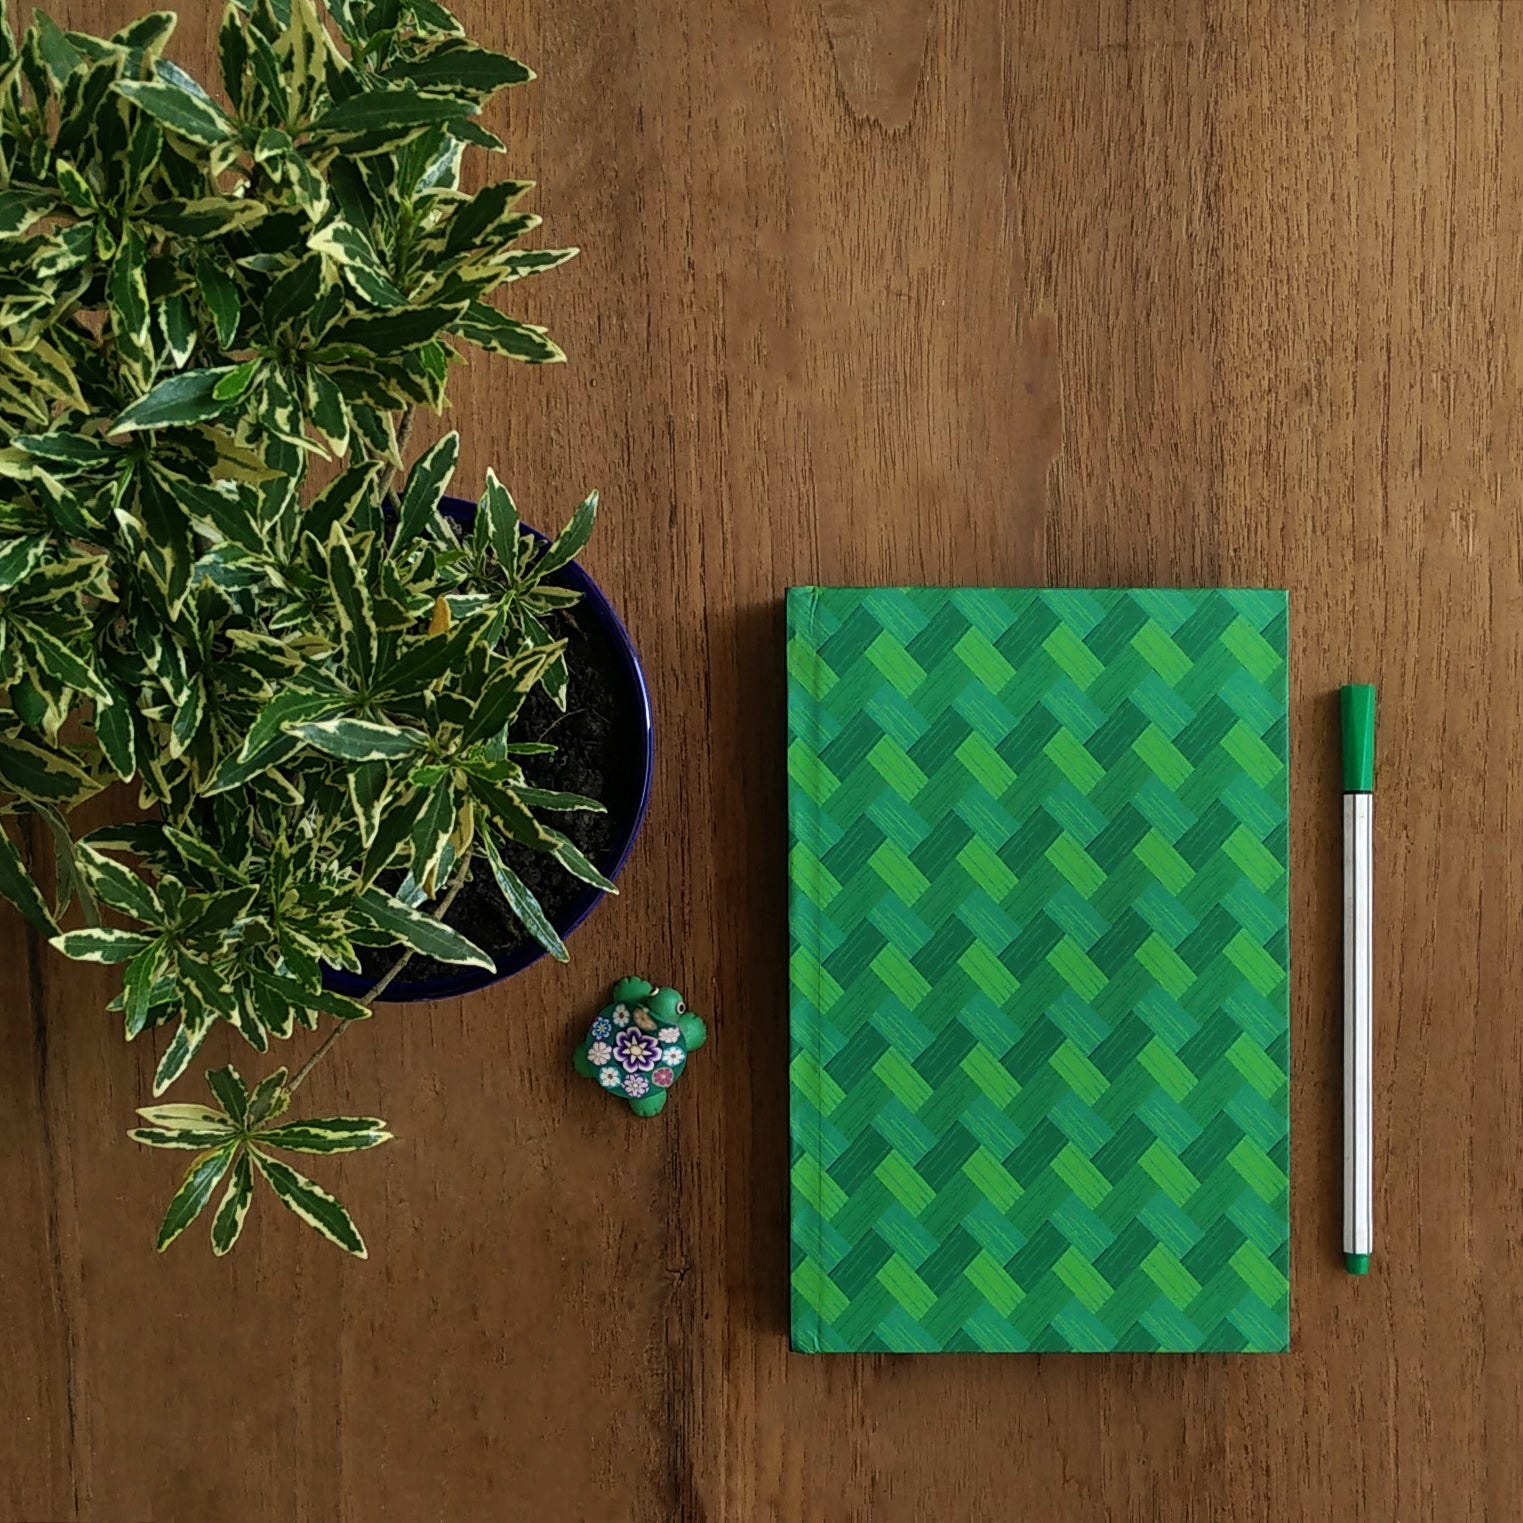 Forest Green Bamboo Mat Pattern Notebook - NEST by Arpit Agarwal